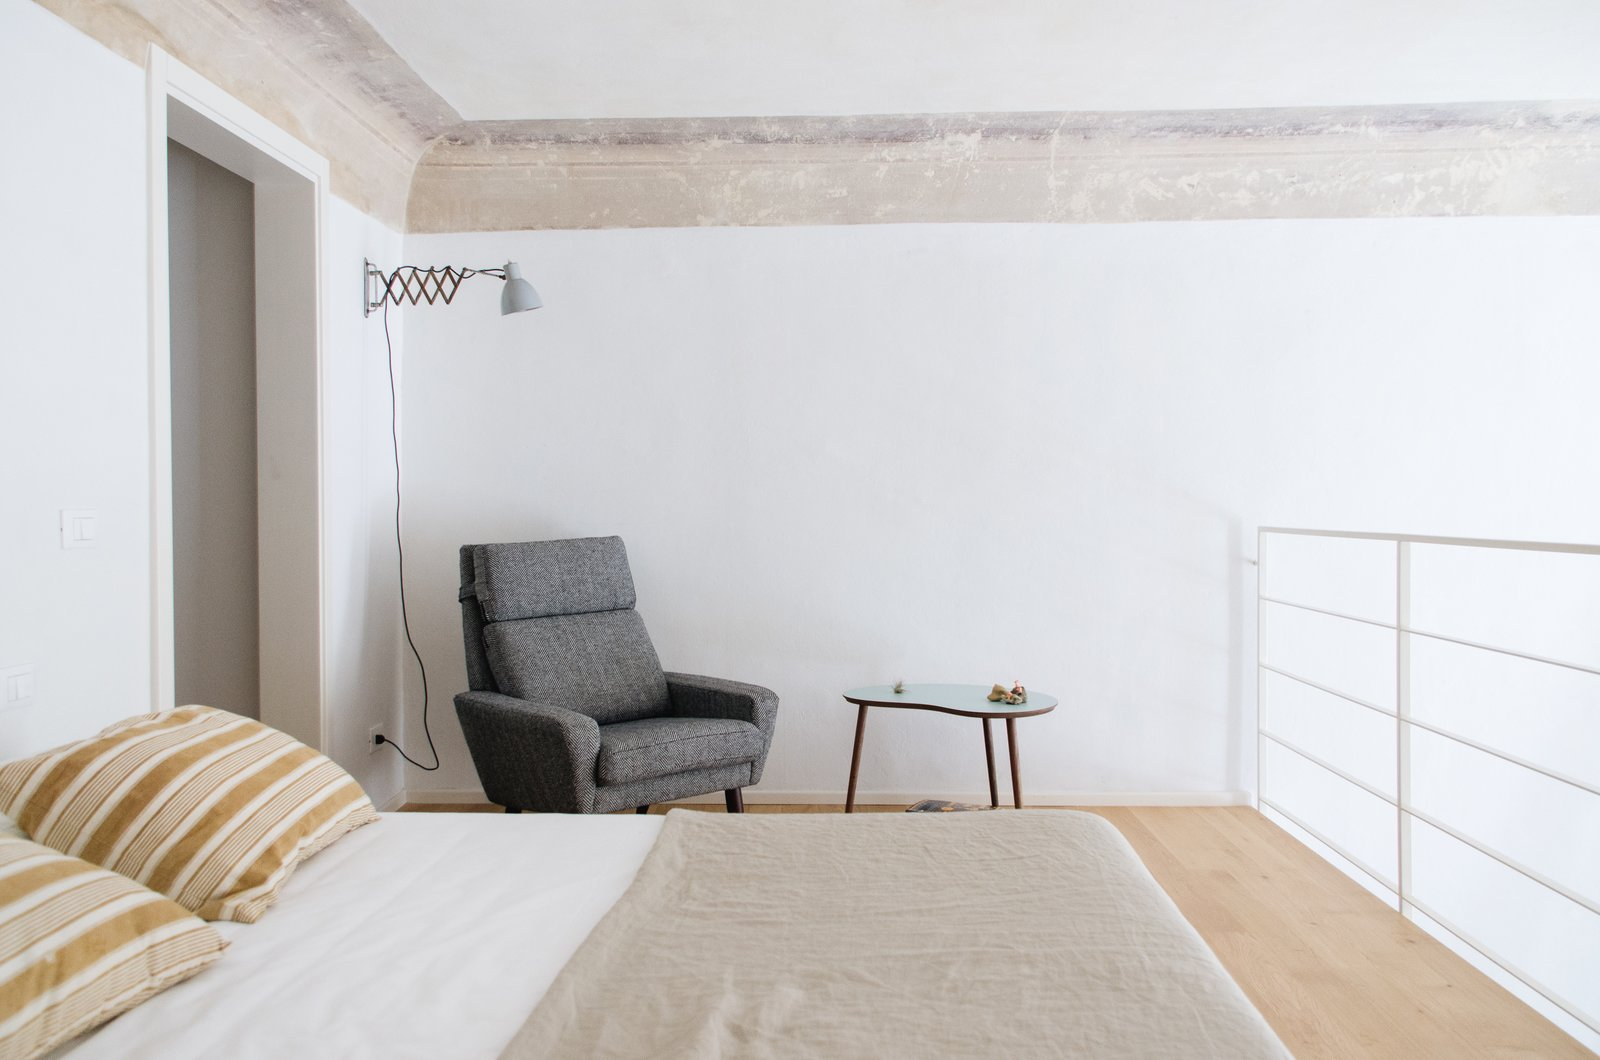 Bedroom, Bed, Chair, Wall Lighting, Light Hardwood Floor, and Night Stands Midcentury modern mixes well within the context of the 16th-century palazzo.  Photo 4 of 19 in A 16th-Century Florentine Palazzo Is Transformed Into an Artist Residency